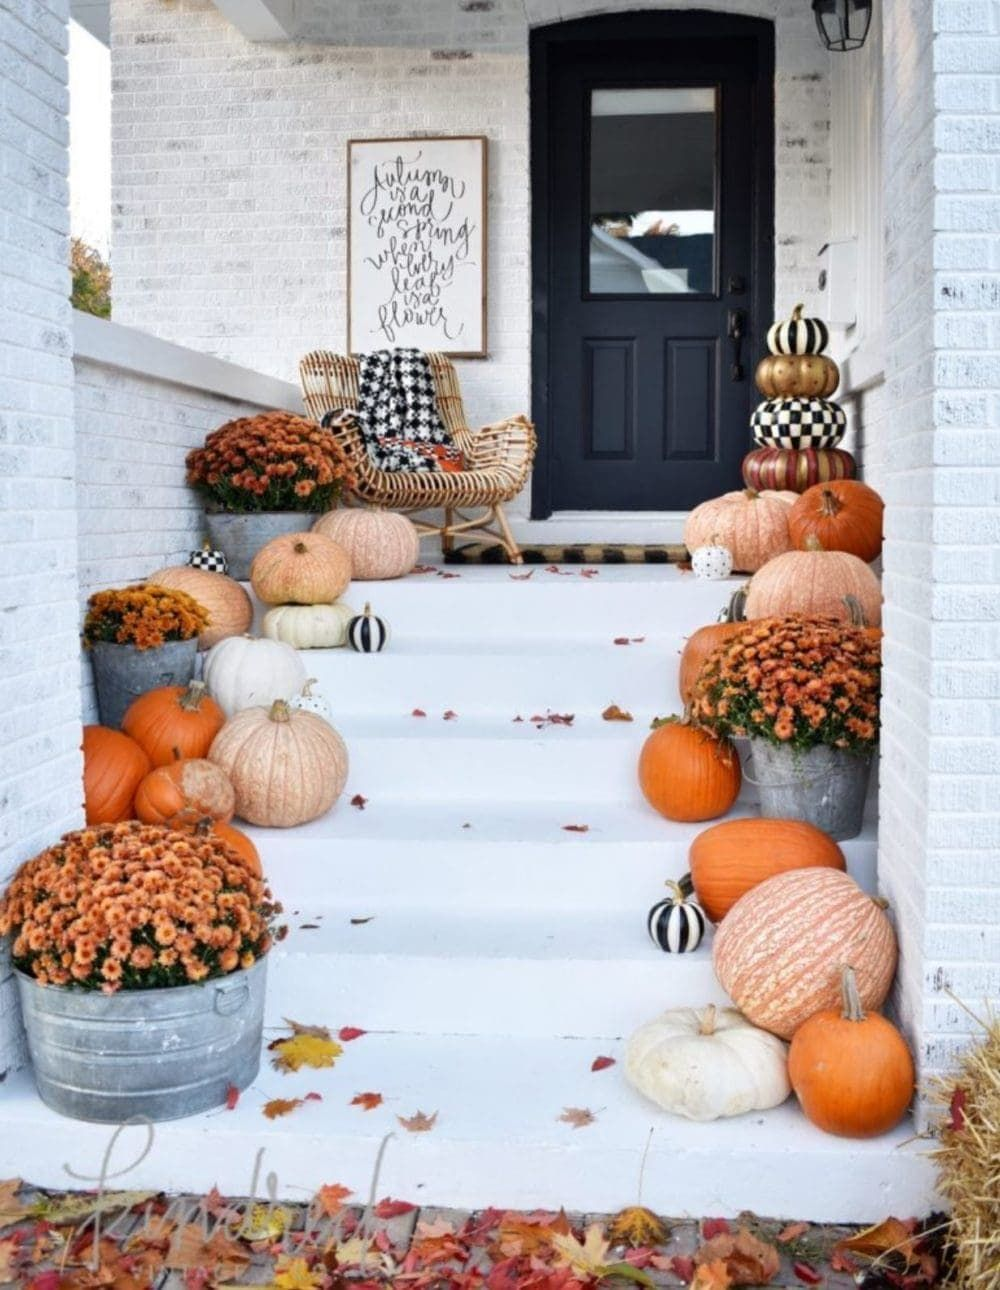 15 Fall Front Porch Decorating Ideas Make Your Porch Look Amazing Fall Decorations Porch Fall Front Porch Decor Front Porch Decorating